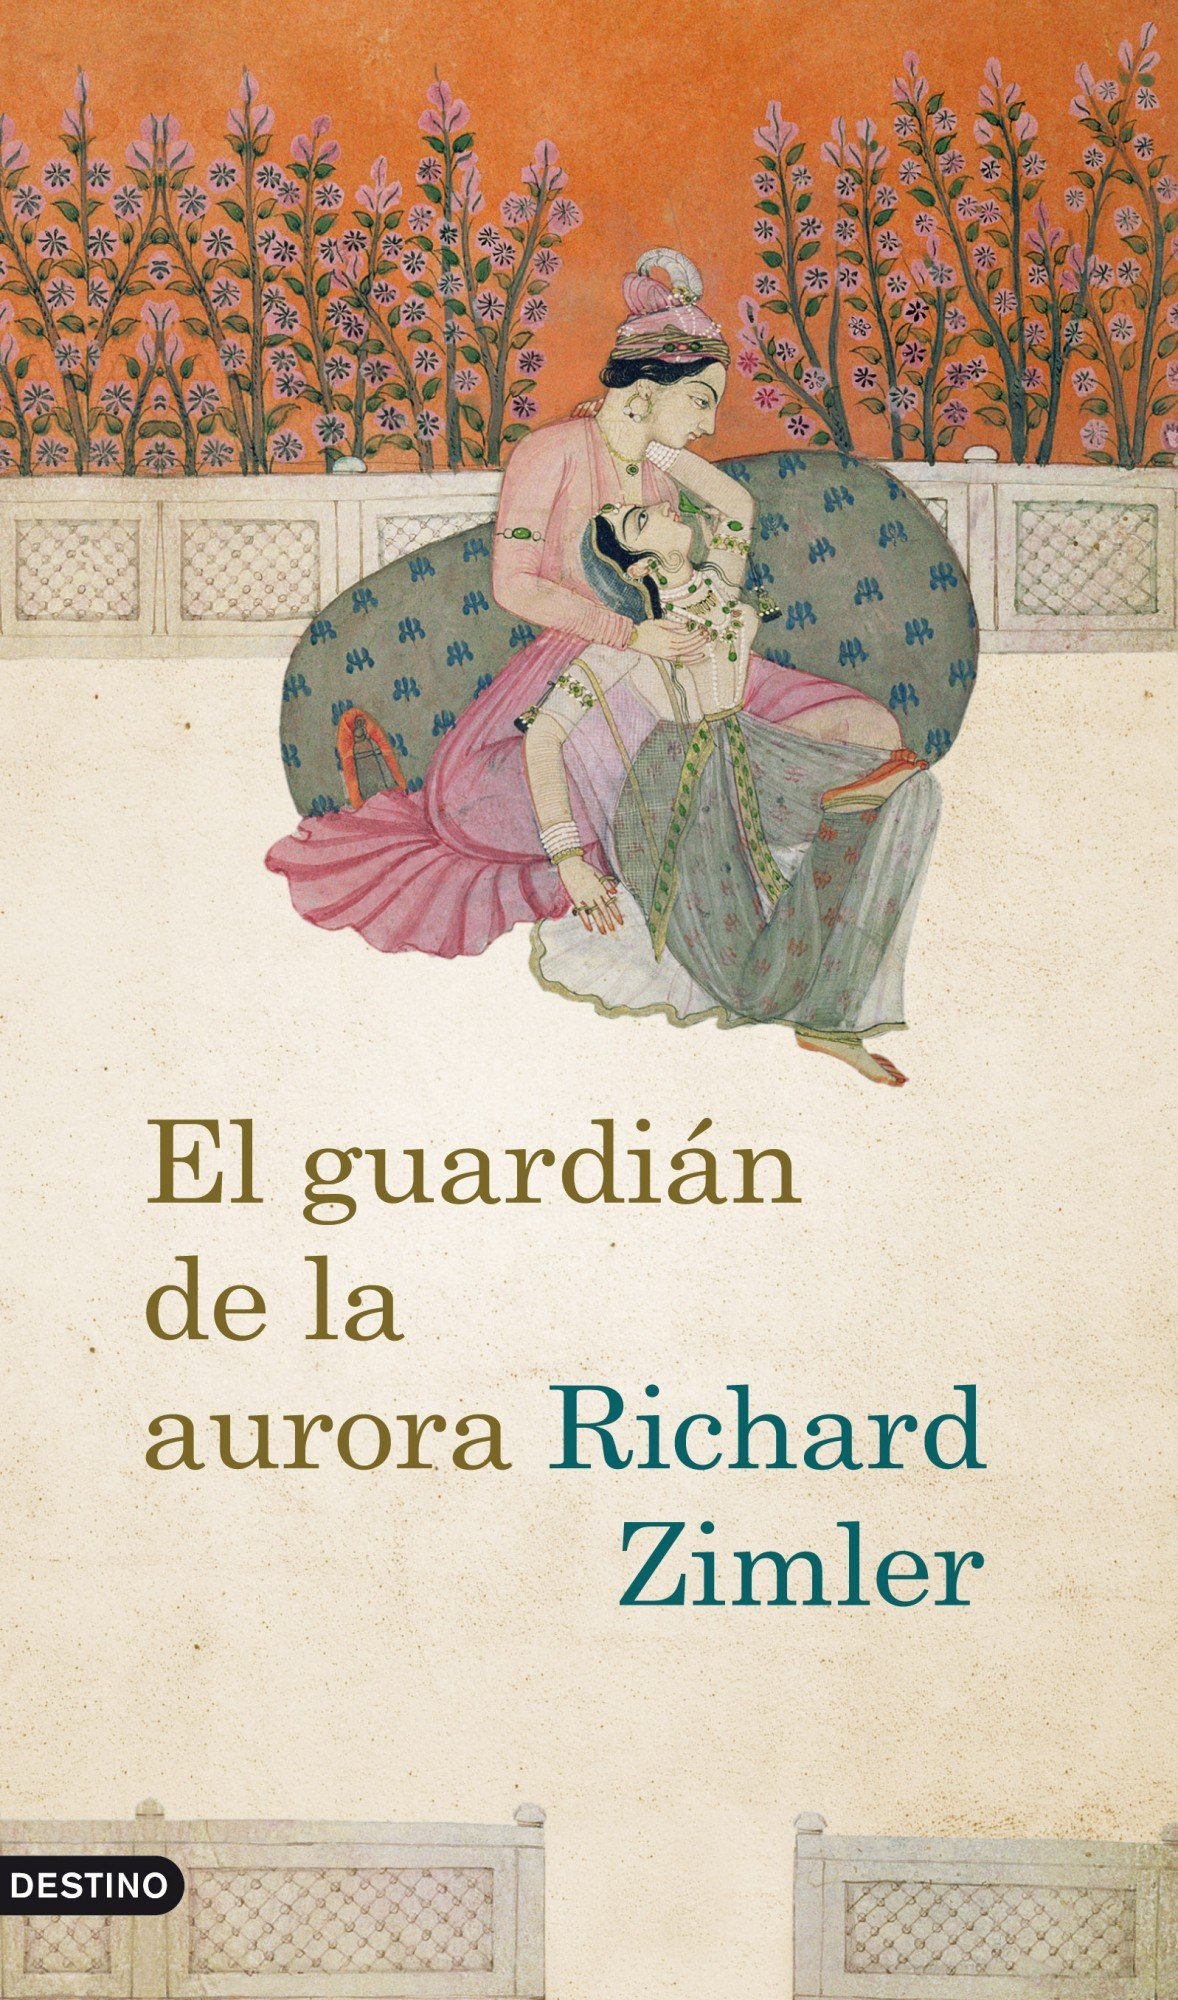 El guardián de la aurora: Amazon.es: Richard Zimler: Libros